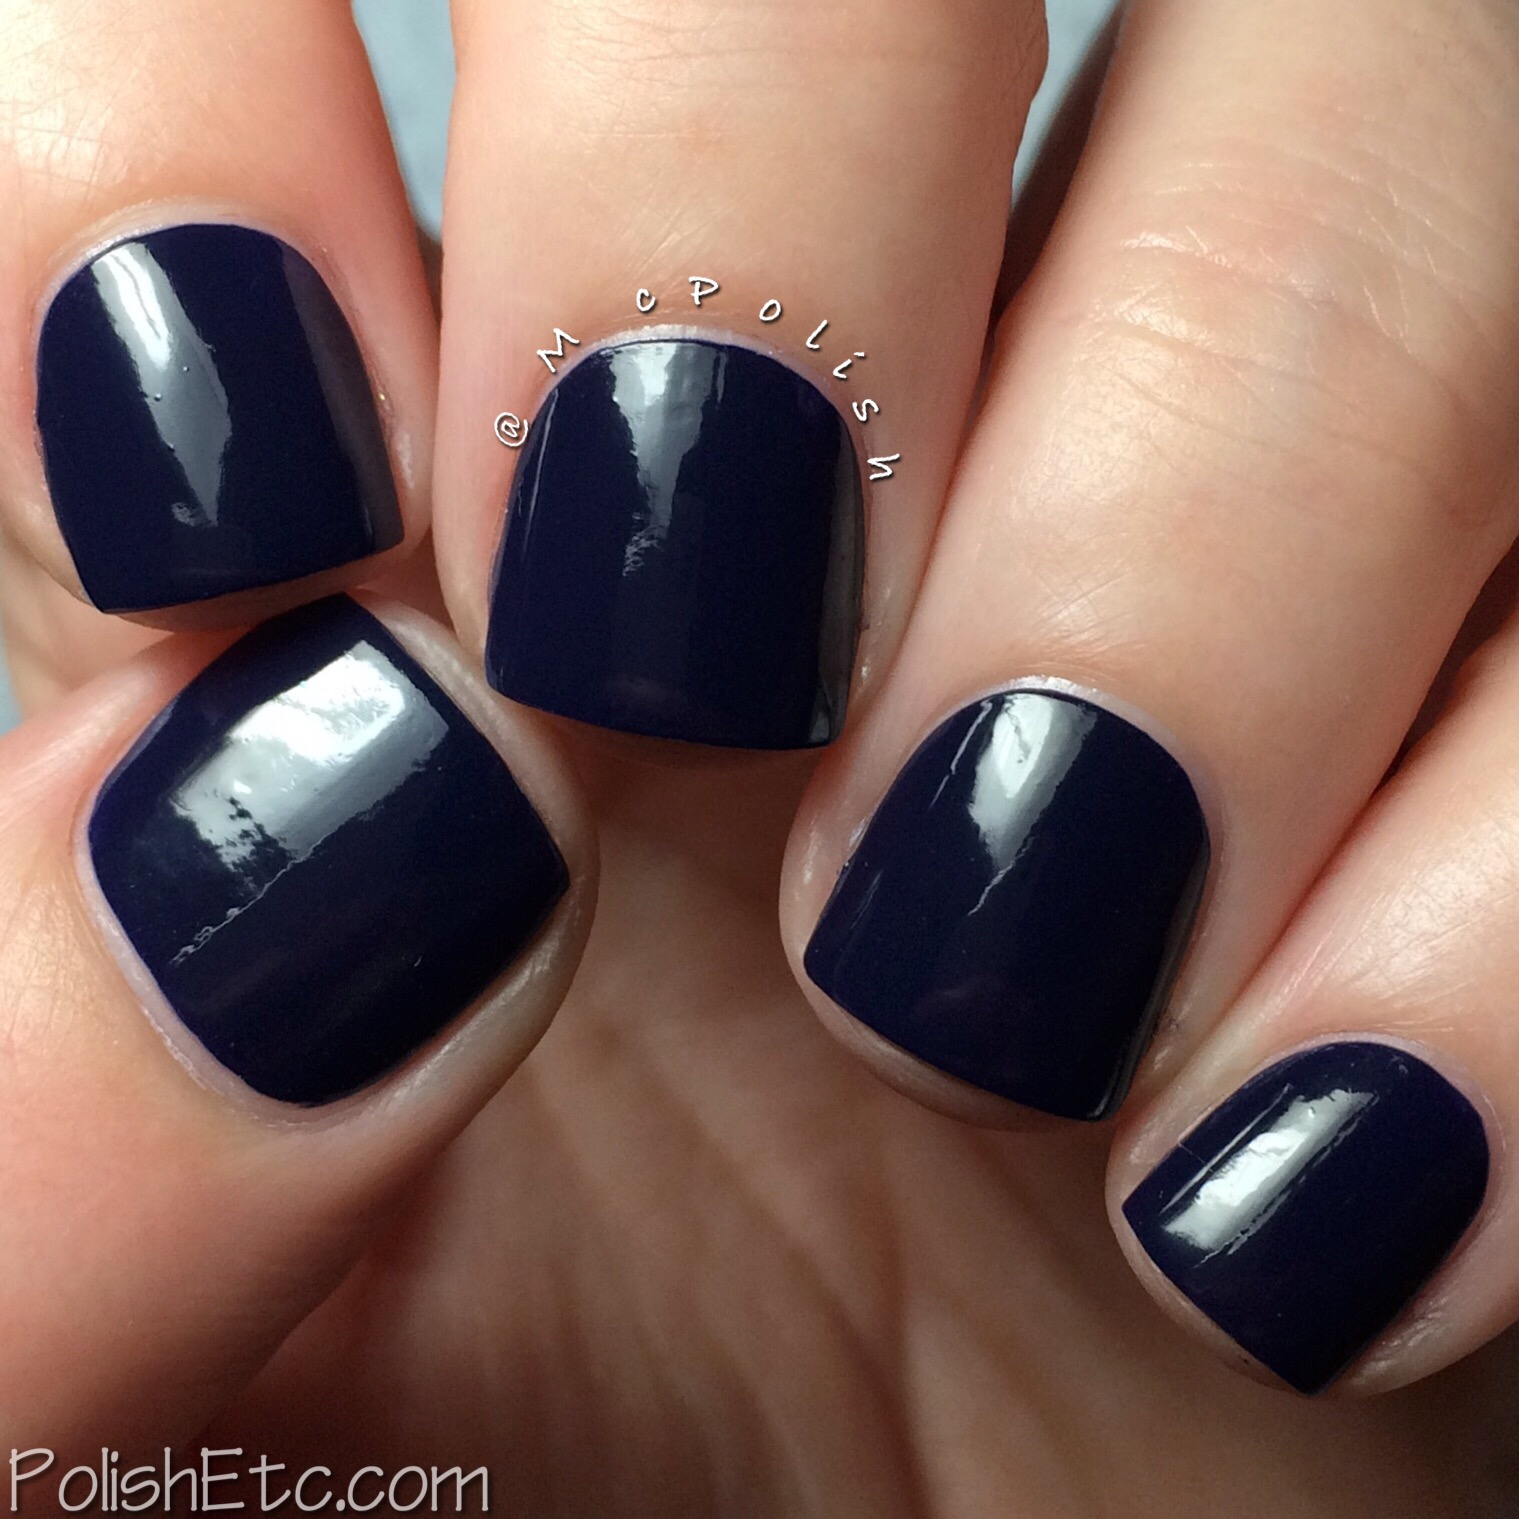 Lisa Nail Lacquer - Fall/Winter 2015 Collection - Polish Etc.